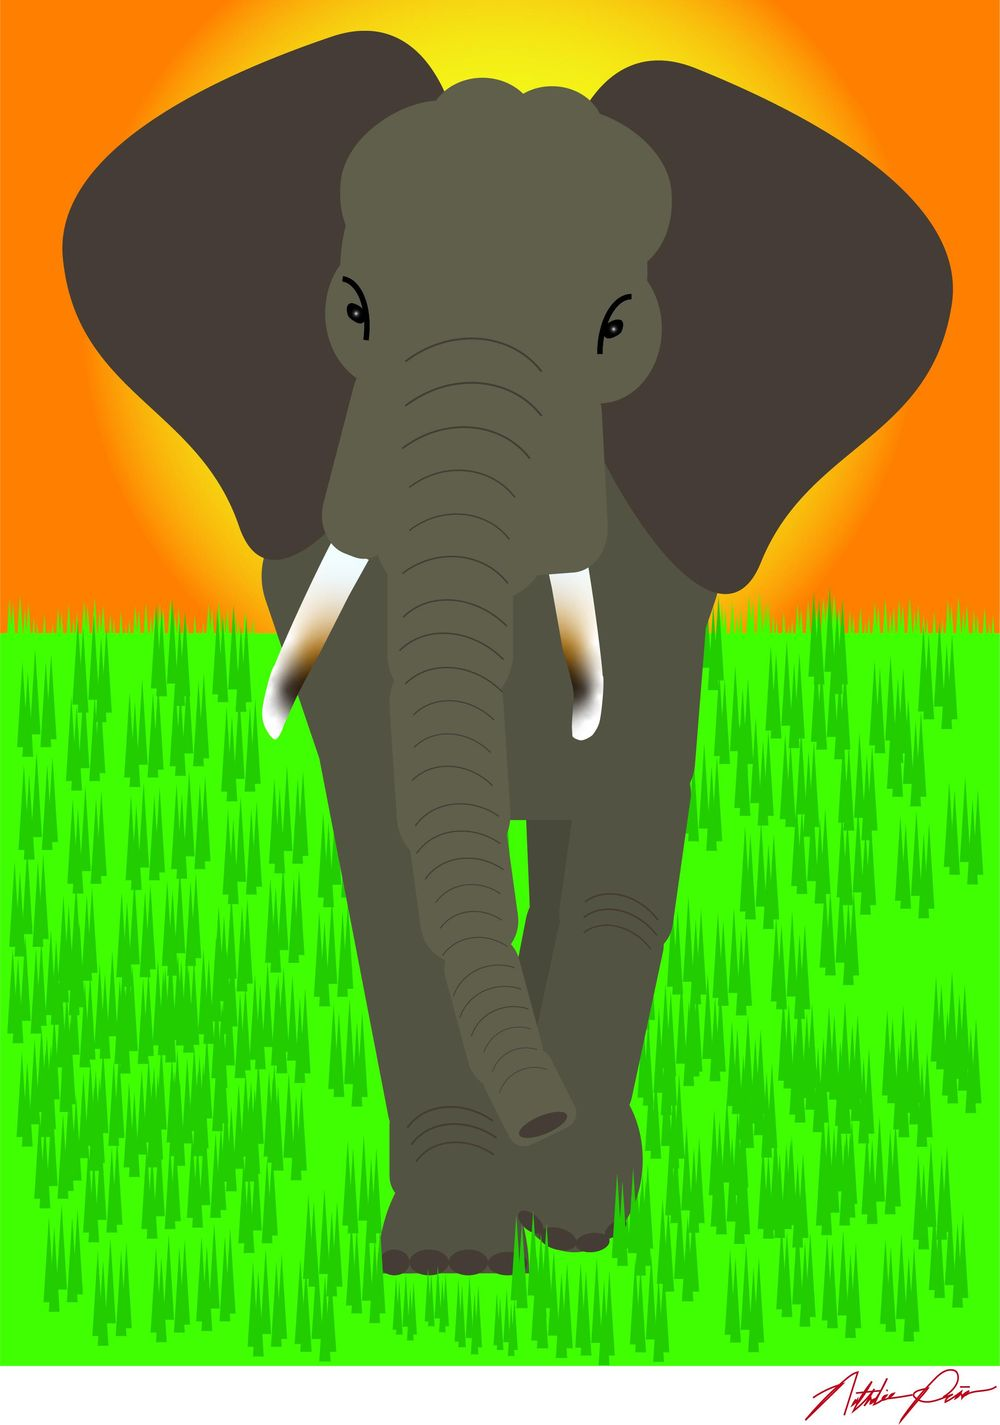 Adobe Illustrator CC Essentials - Projects - image 12 - student project